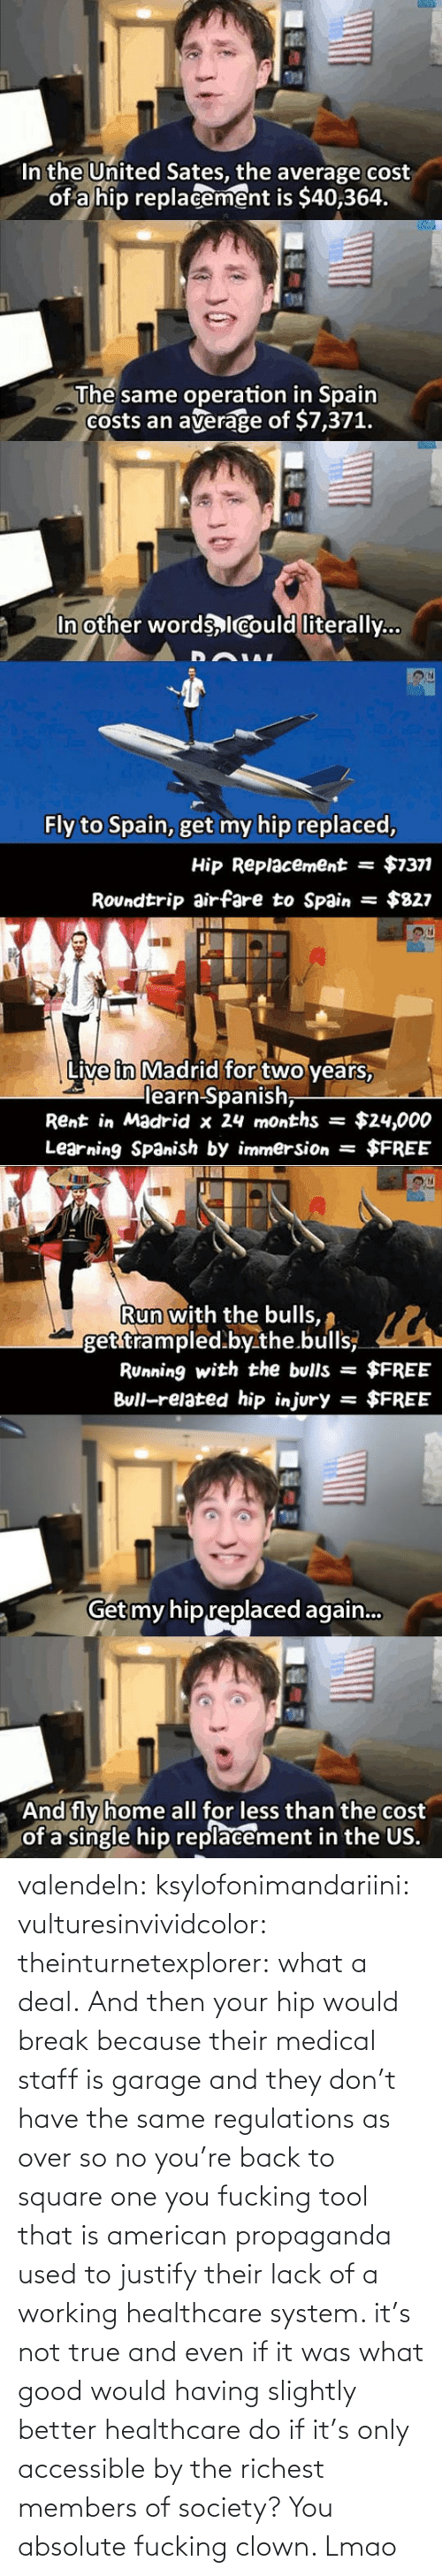 system: valendeln:  ksylofonimandariini:  vulturesinvividcolor:   theinturnetexplorer:  what a deal.   And then your hip would break because their medical staff is garage and they don't have the same regulations as over so no you're back to square one you fucking tool    that is american propaganda used to justify their lack of a working healthcare system. it's not true and even if it was what good would having slightly better healthcare do if it's only accessible by the richest members of society?      You absolute fucking clown. Lmao